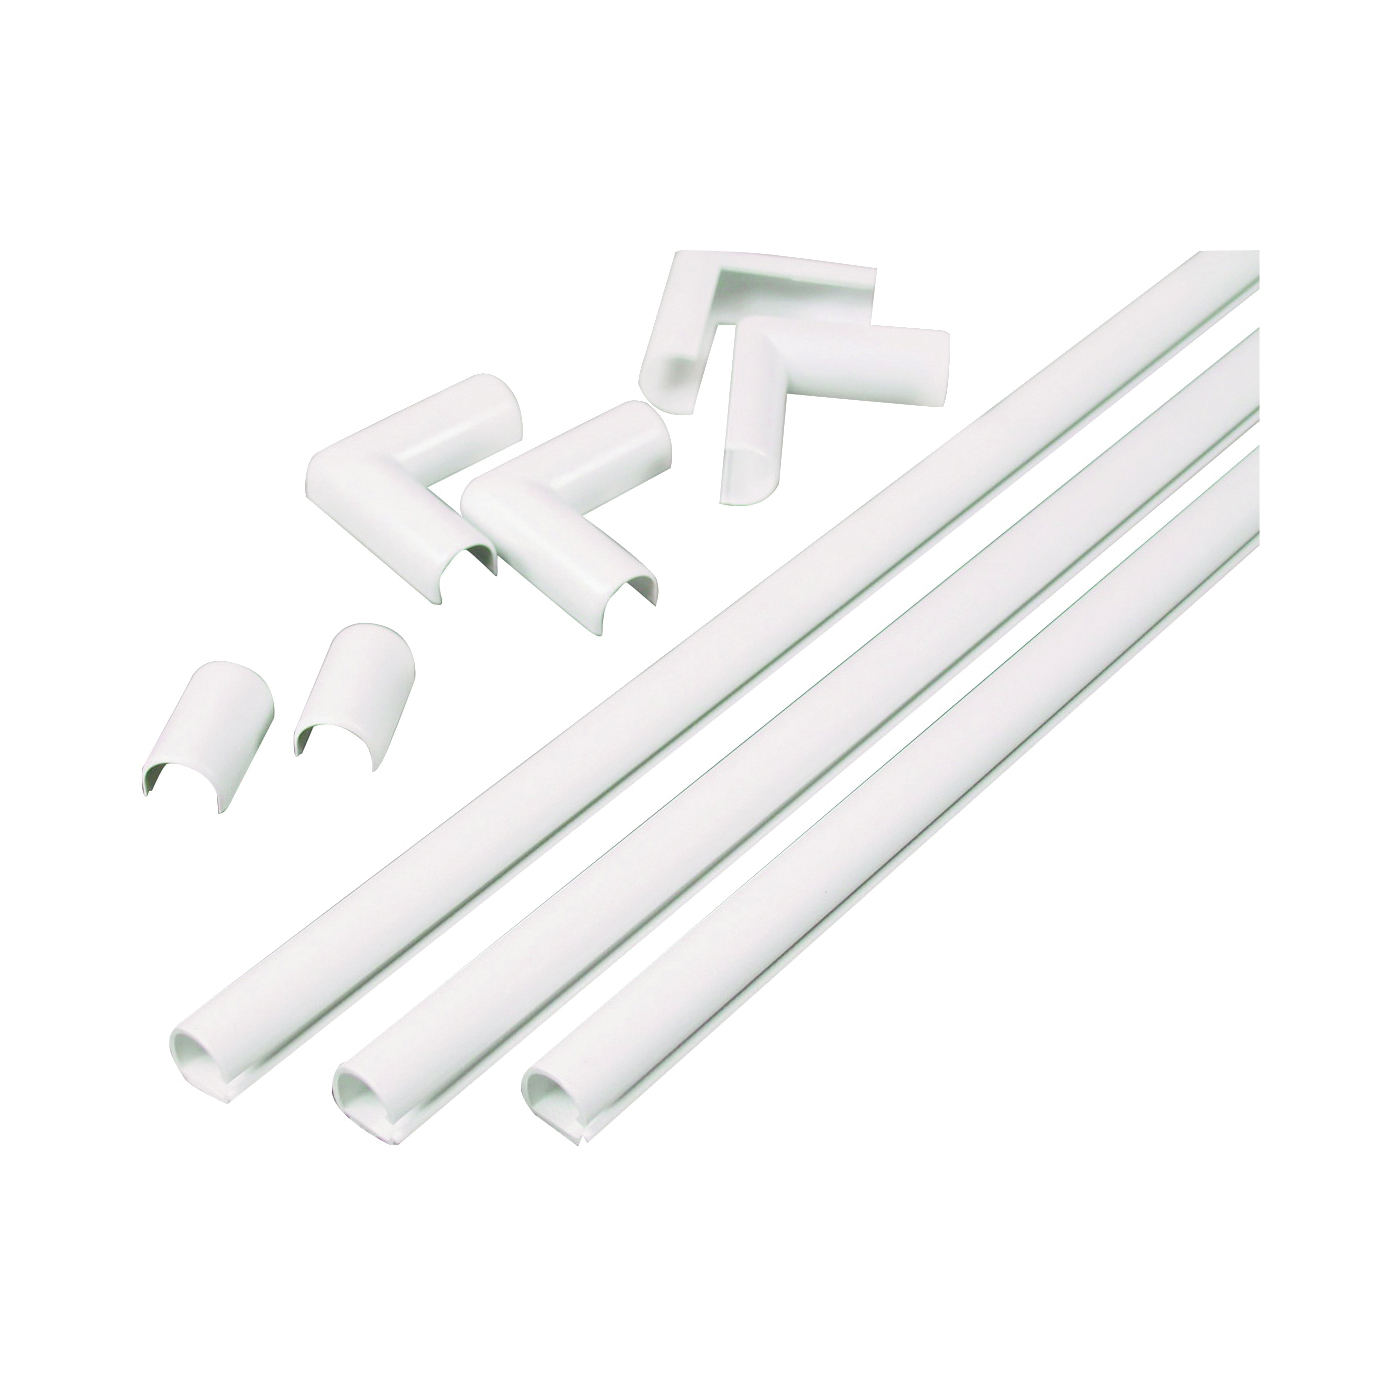 Picture of Legrand Wiremold C110 Cord Channel Kit, PVC, White